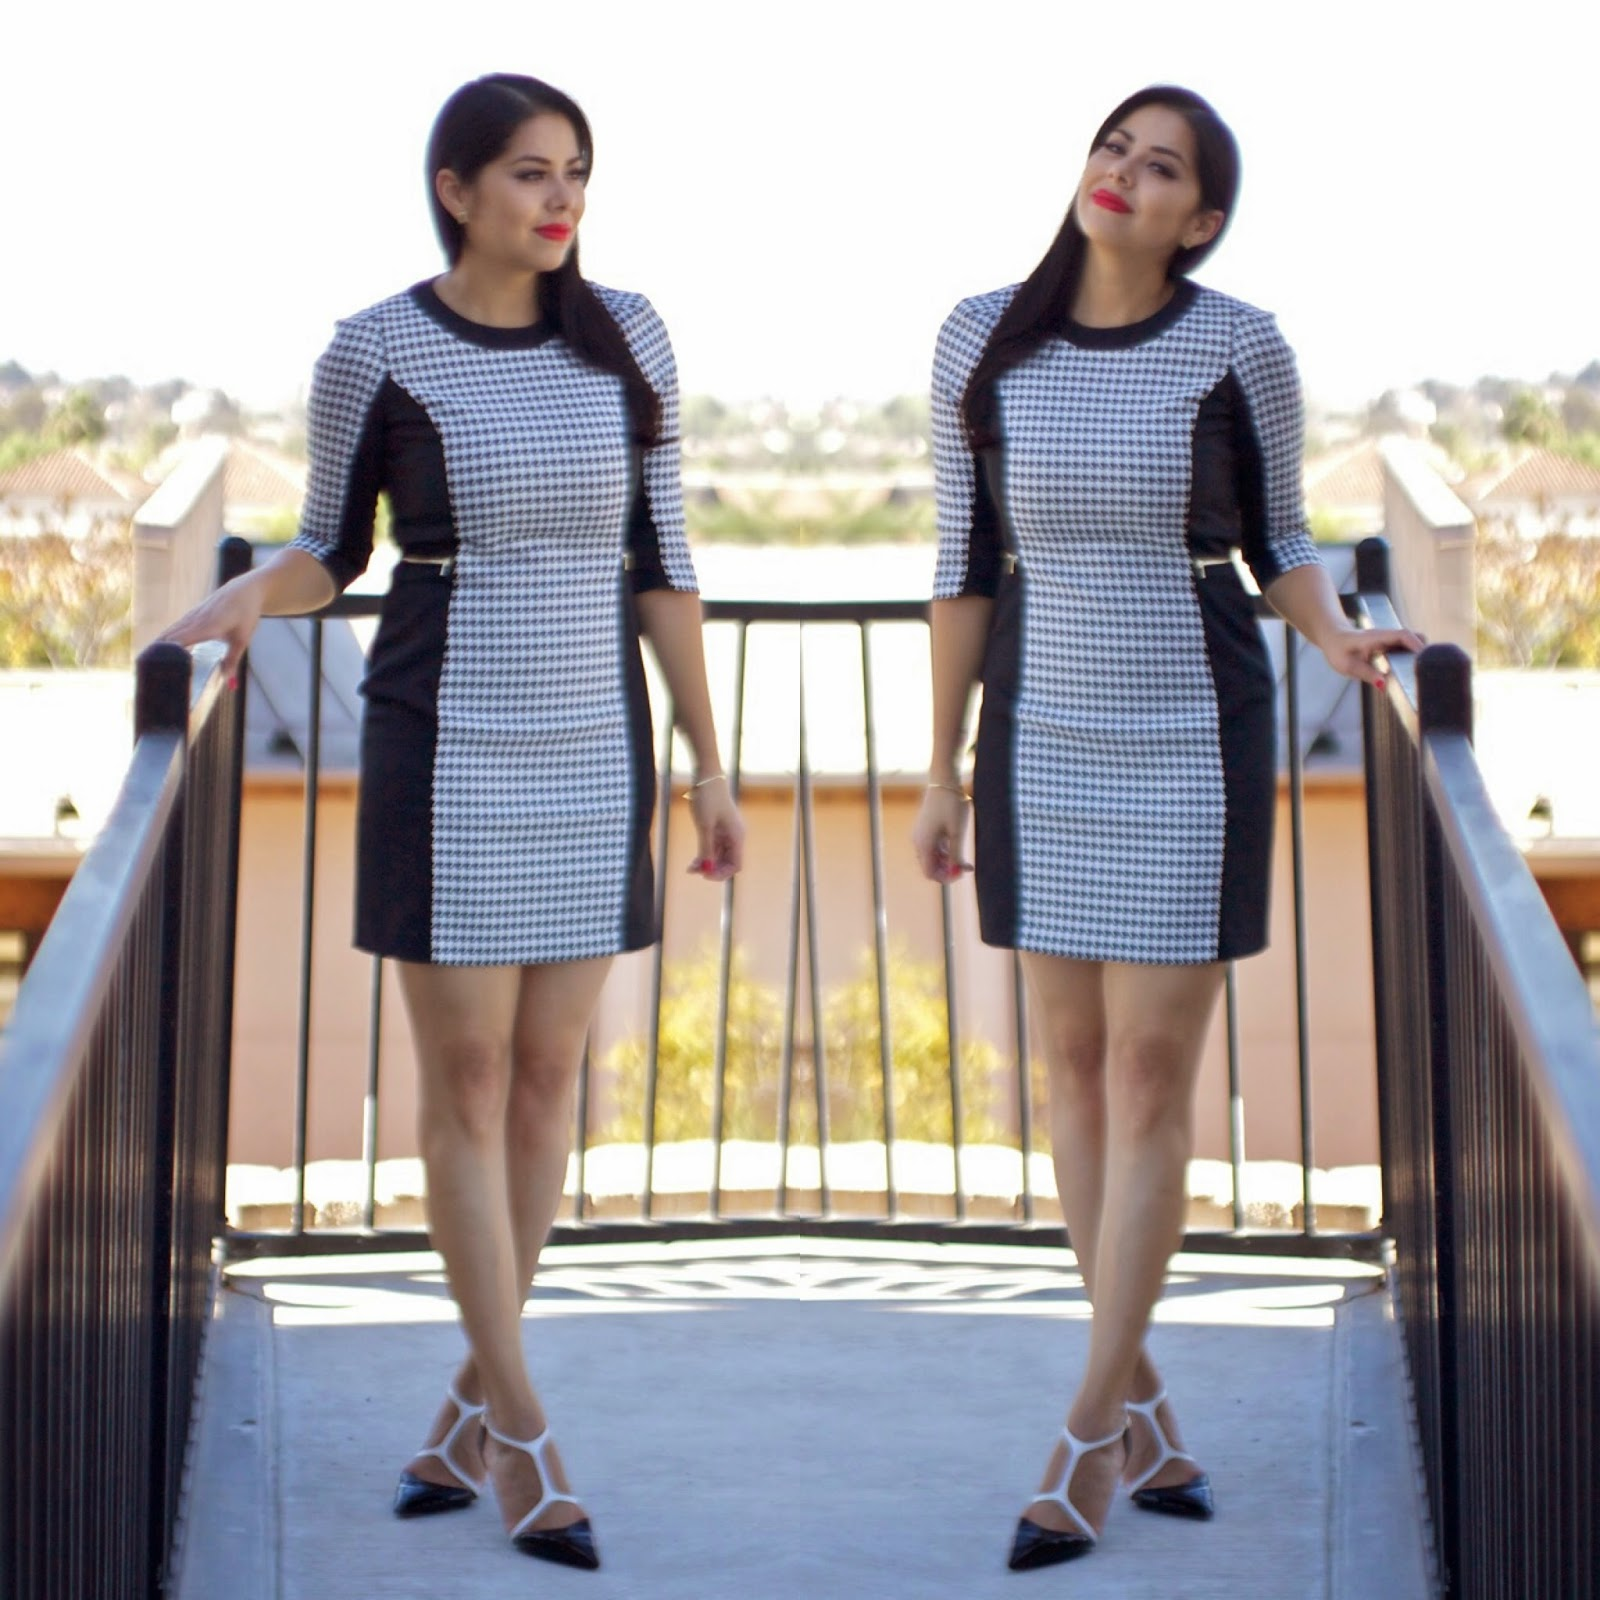 H&M Houndstooth Dress, Dress by H&M, San Diego Fashion Blogger, So cal fashion blogger, latina fashion blogger